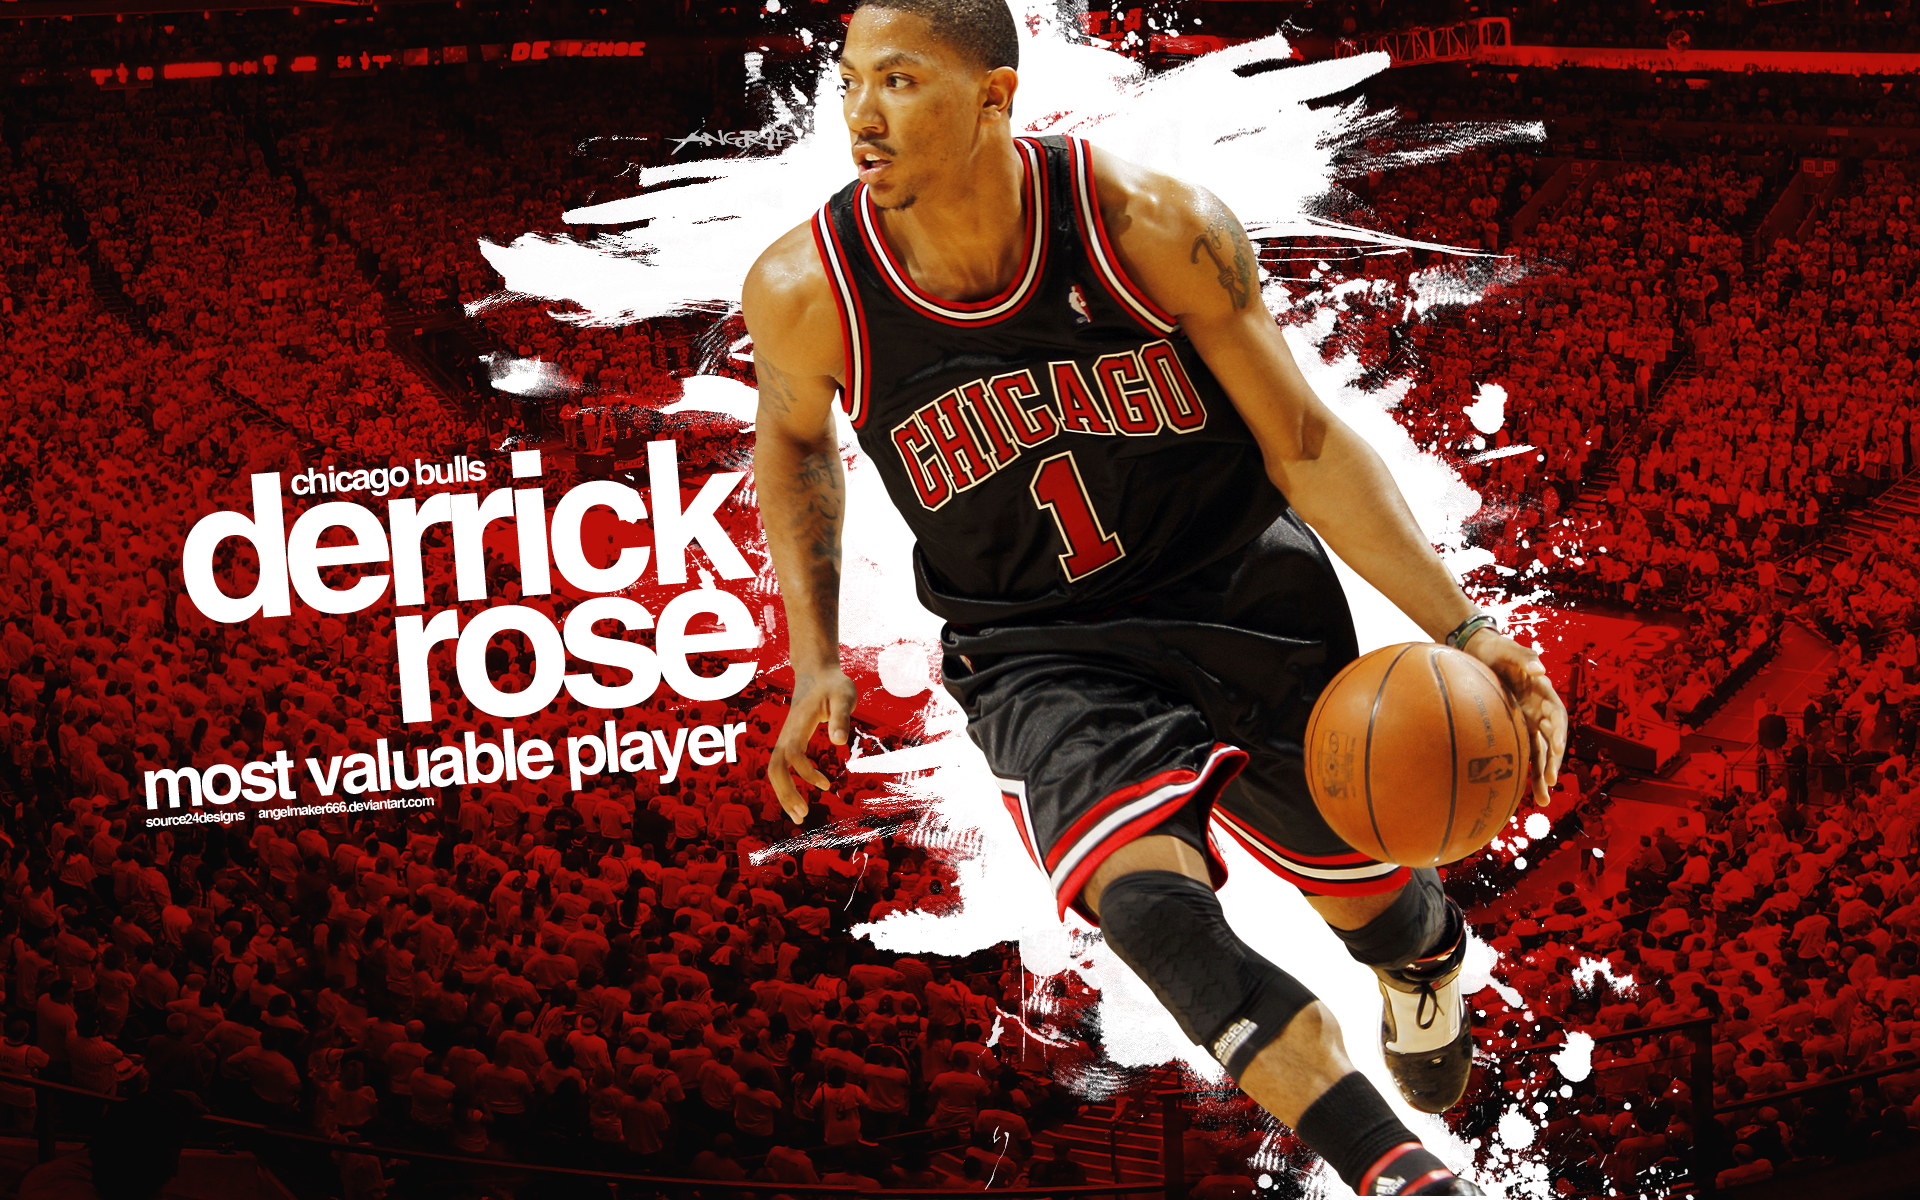 979336de0127 Derrick Rose MVP Wallpaper by IshaanMishra 1920x1200